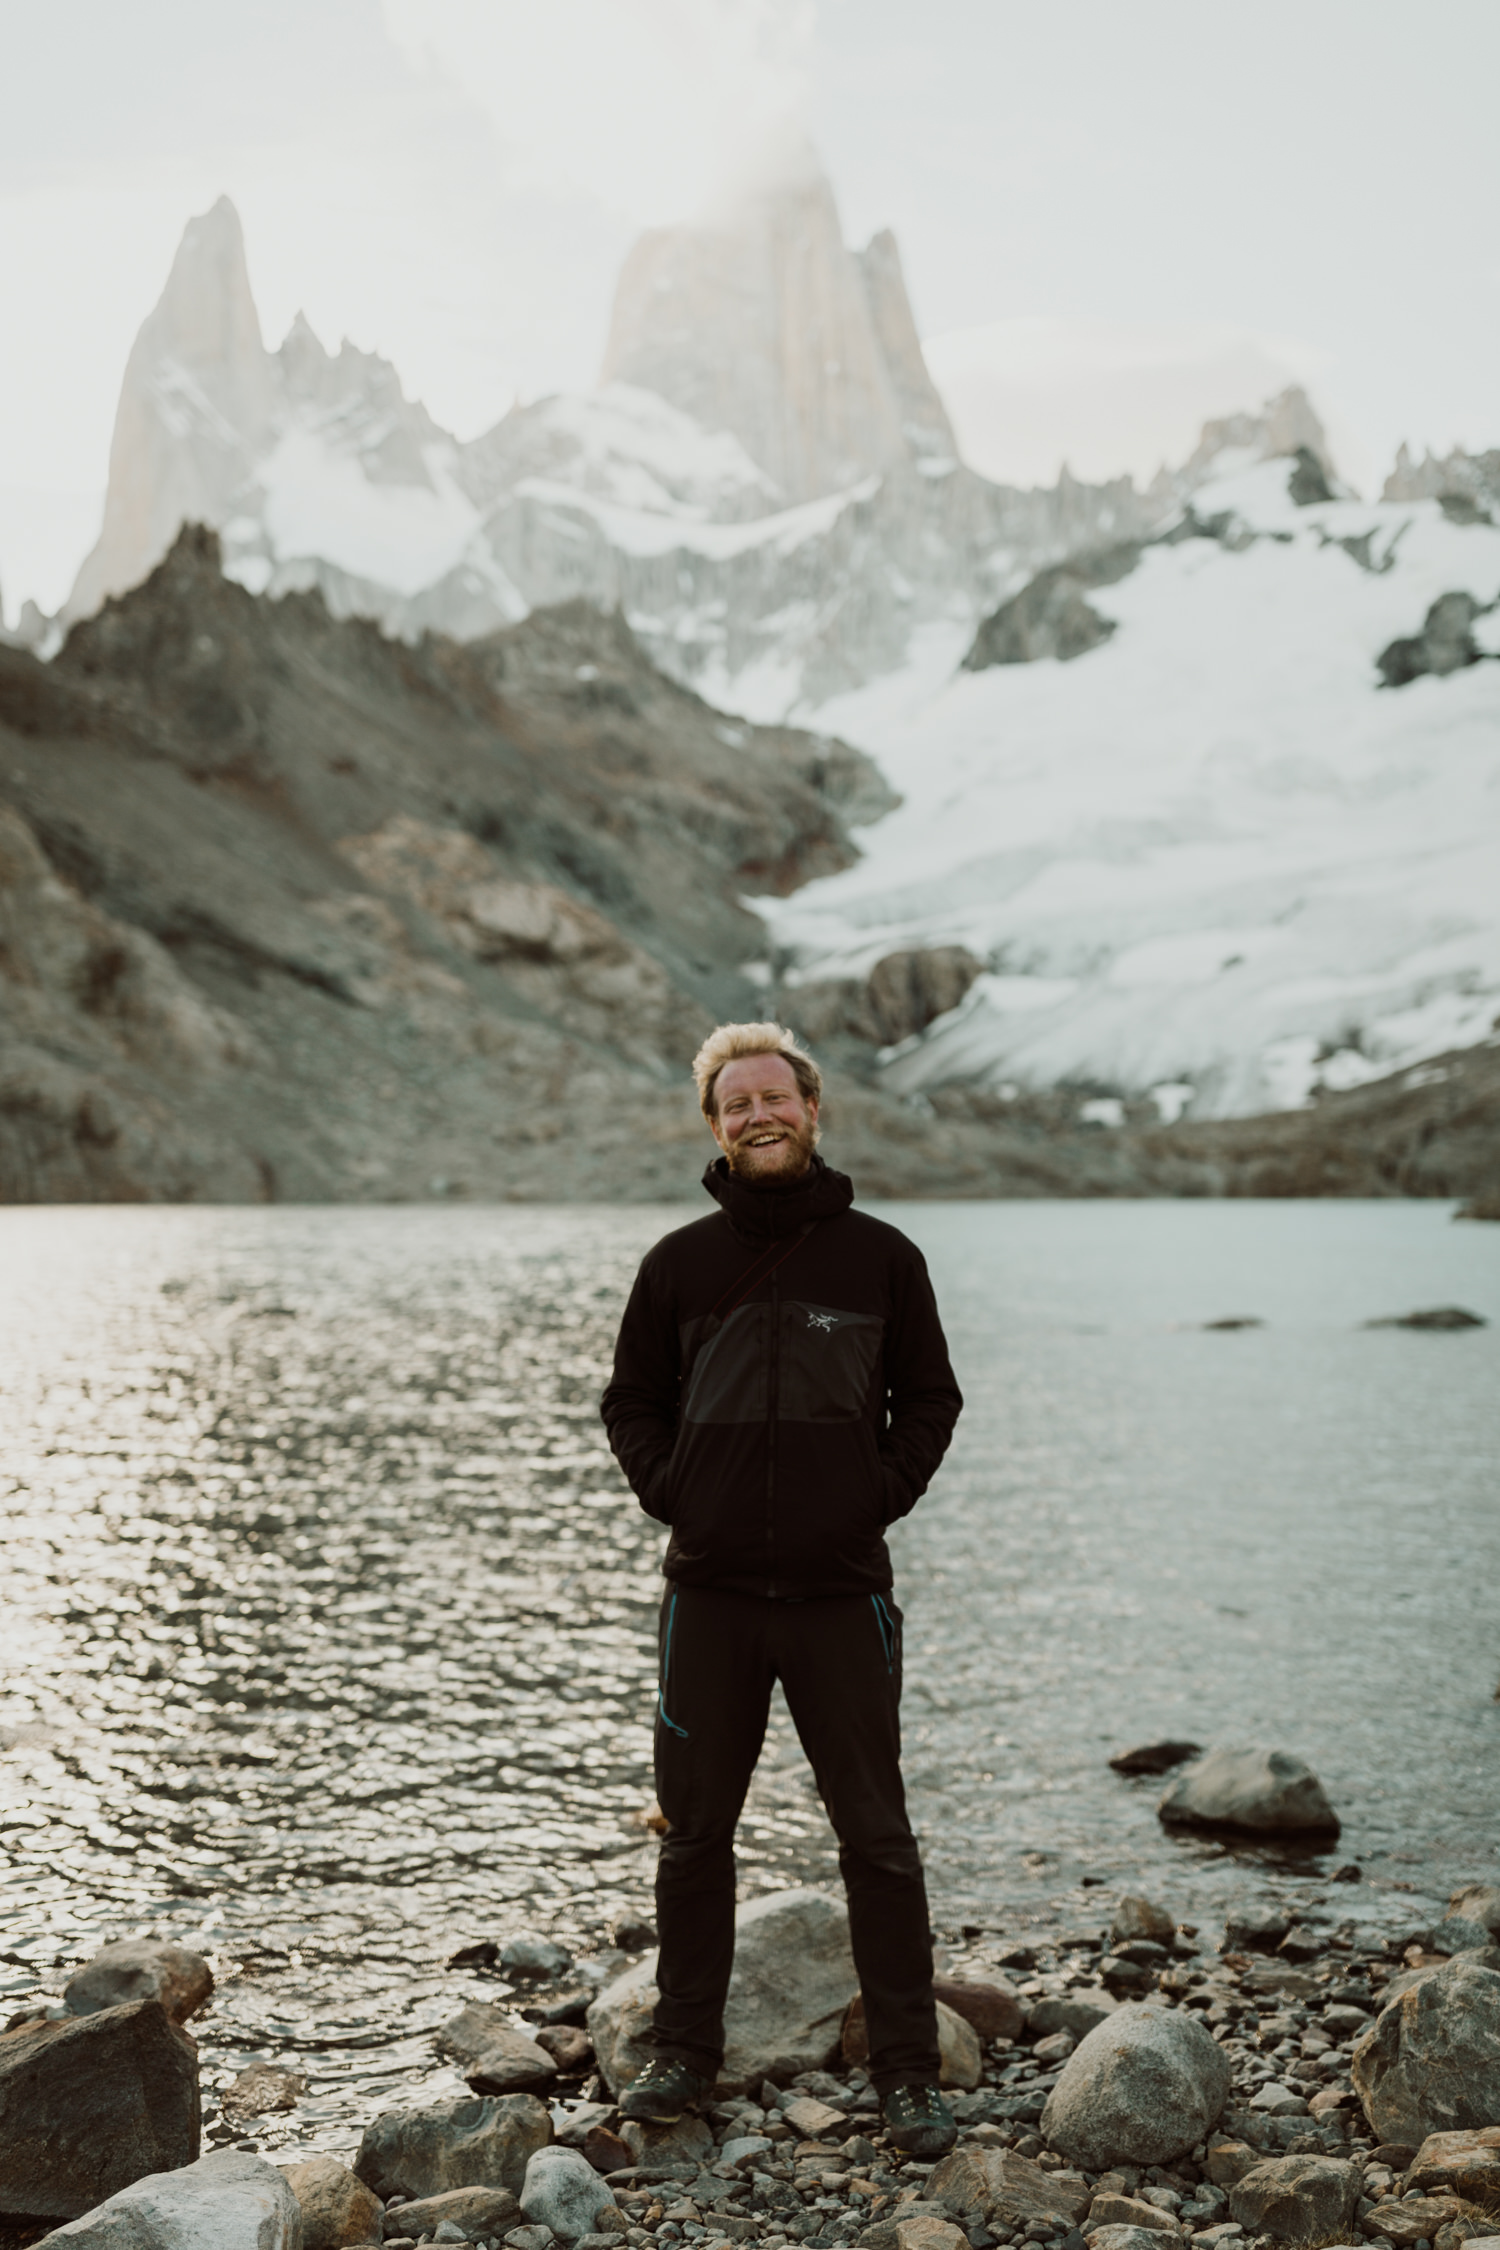 patagonia-adventure-photographer-108.jpg